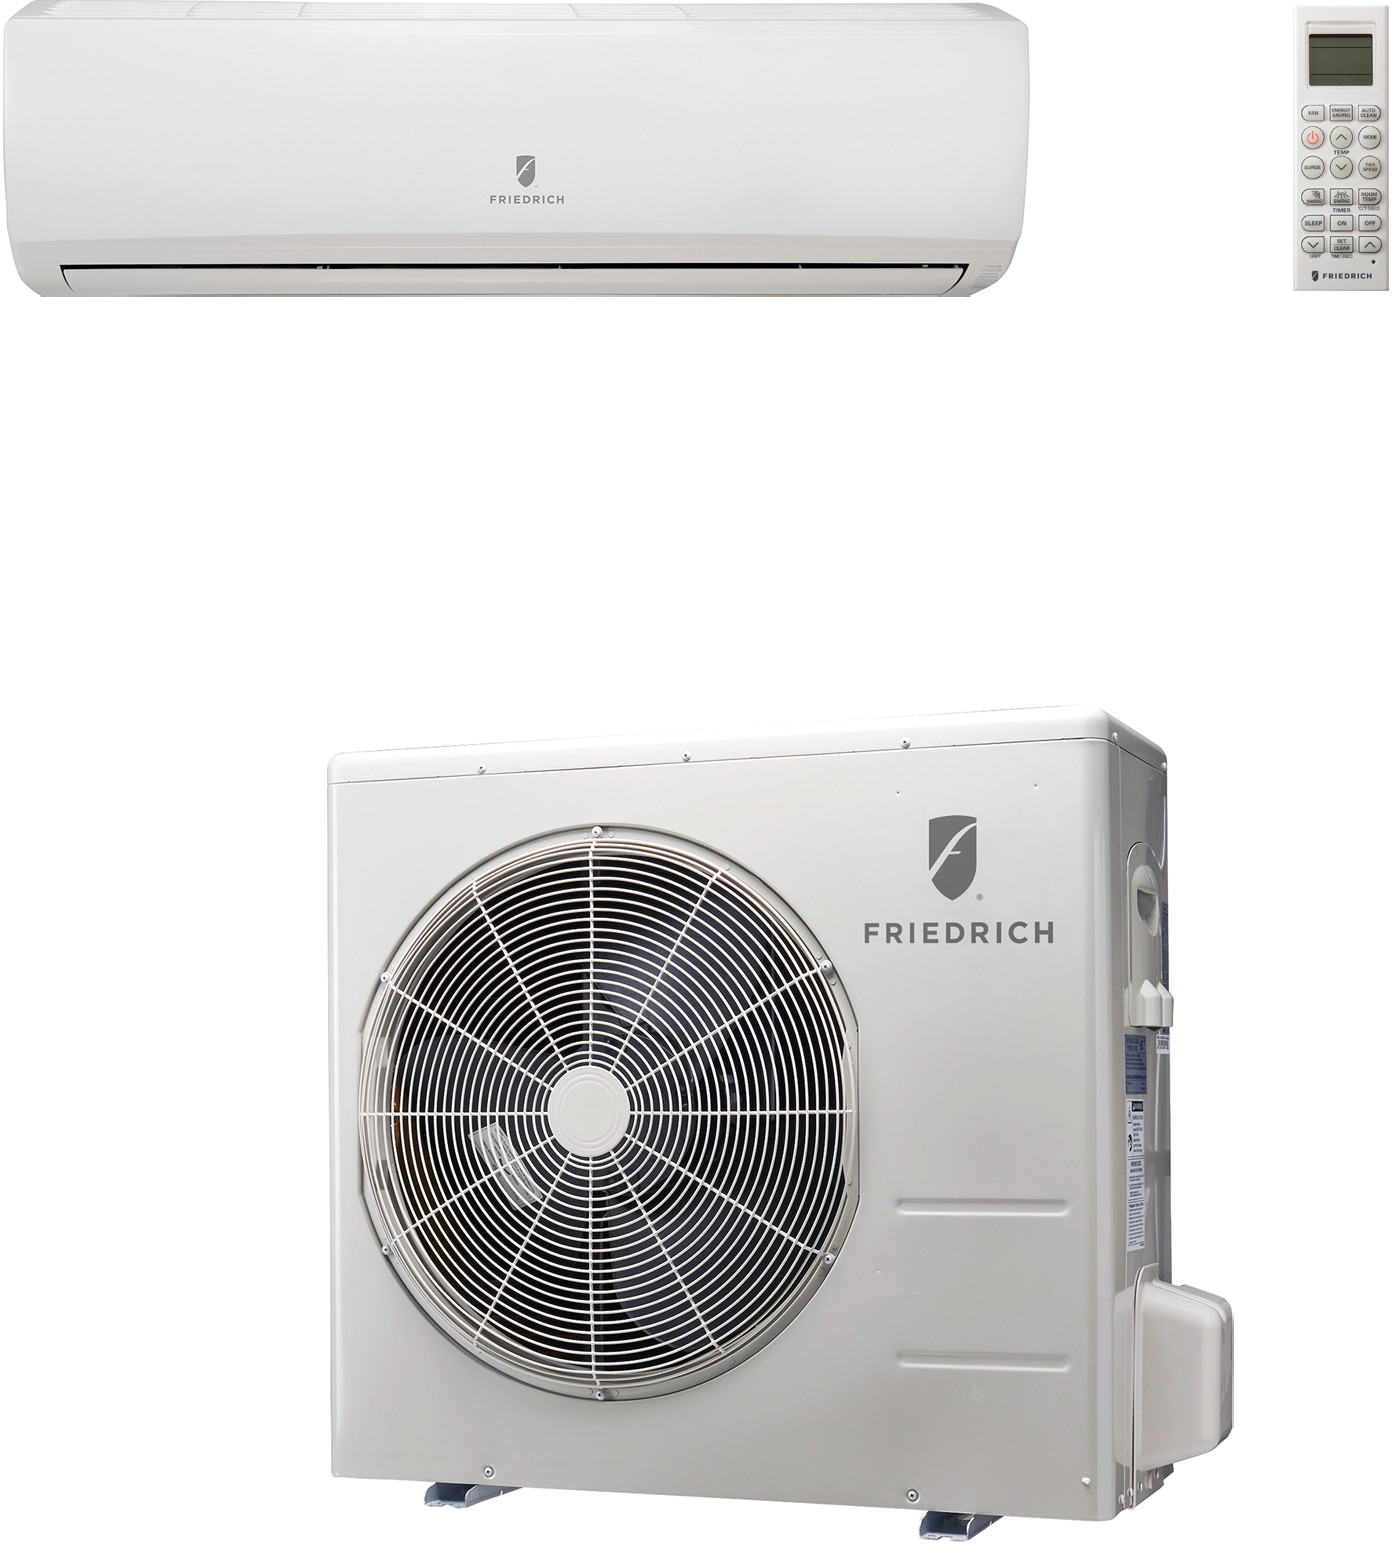 Friedrich 33,000 BTU Single Zone Ductless Split System M36YJ